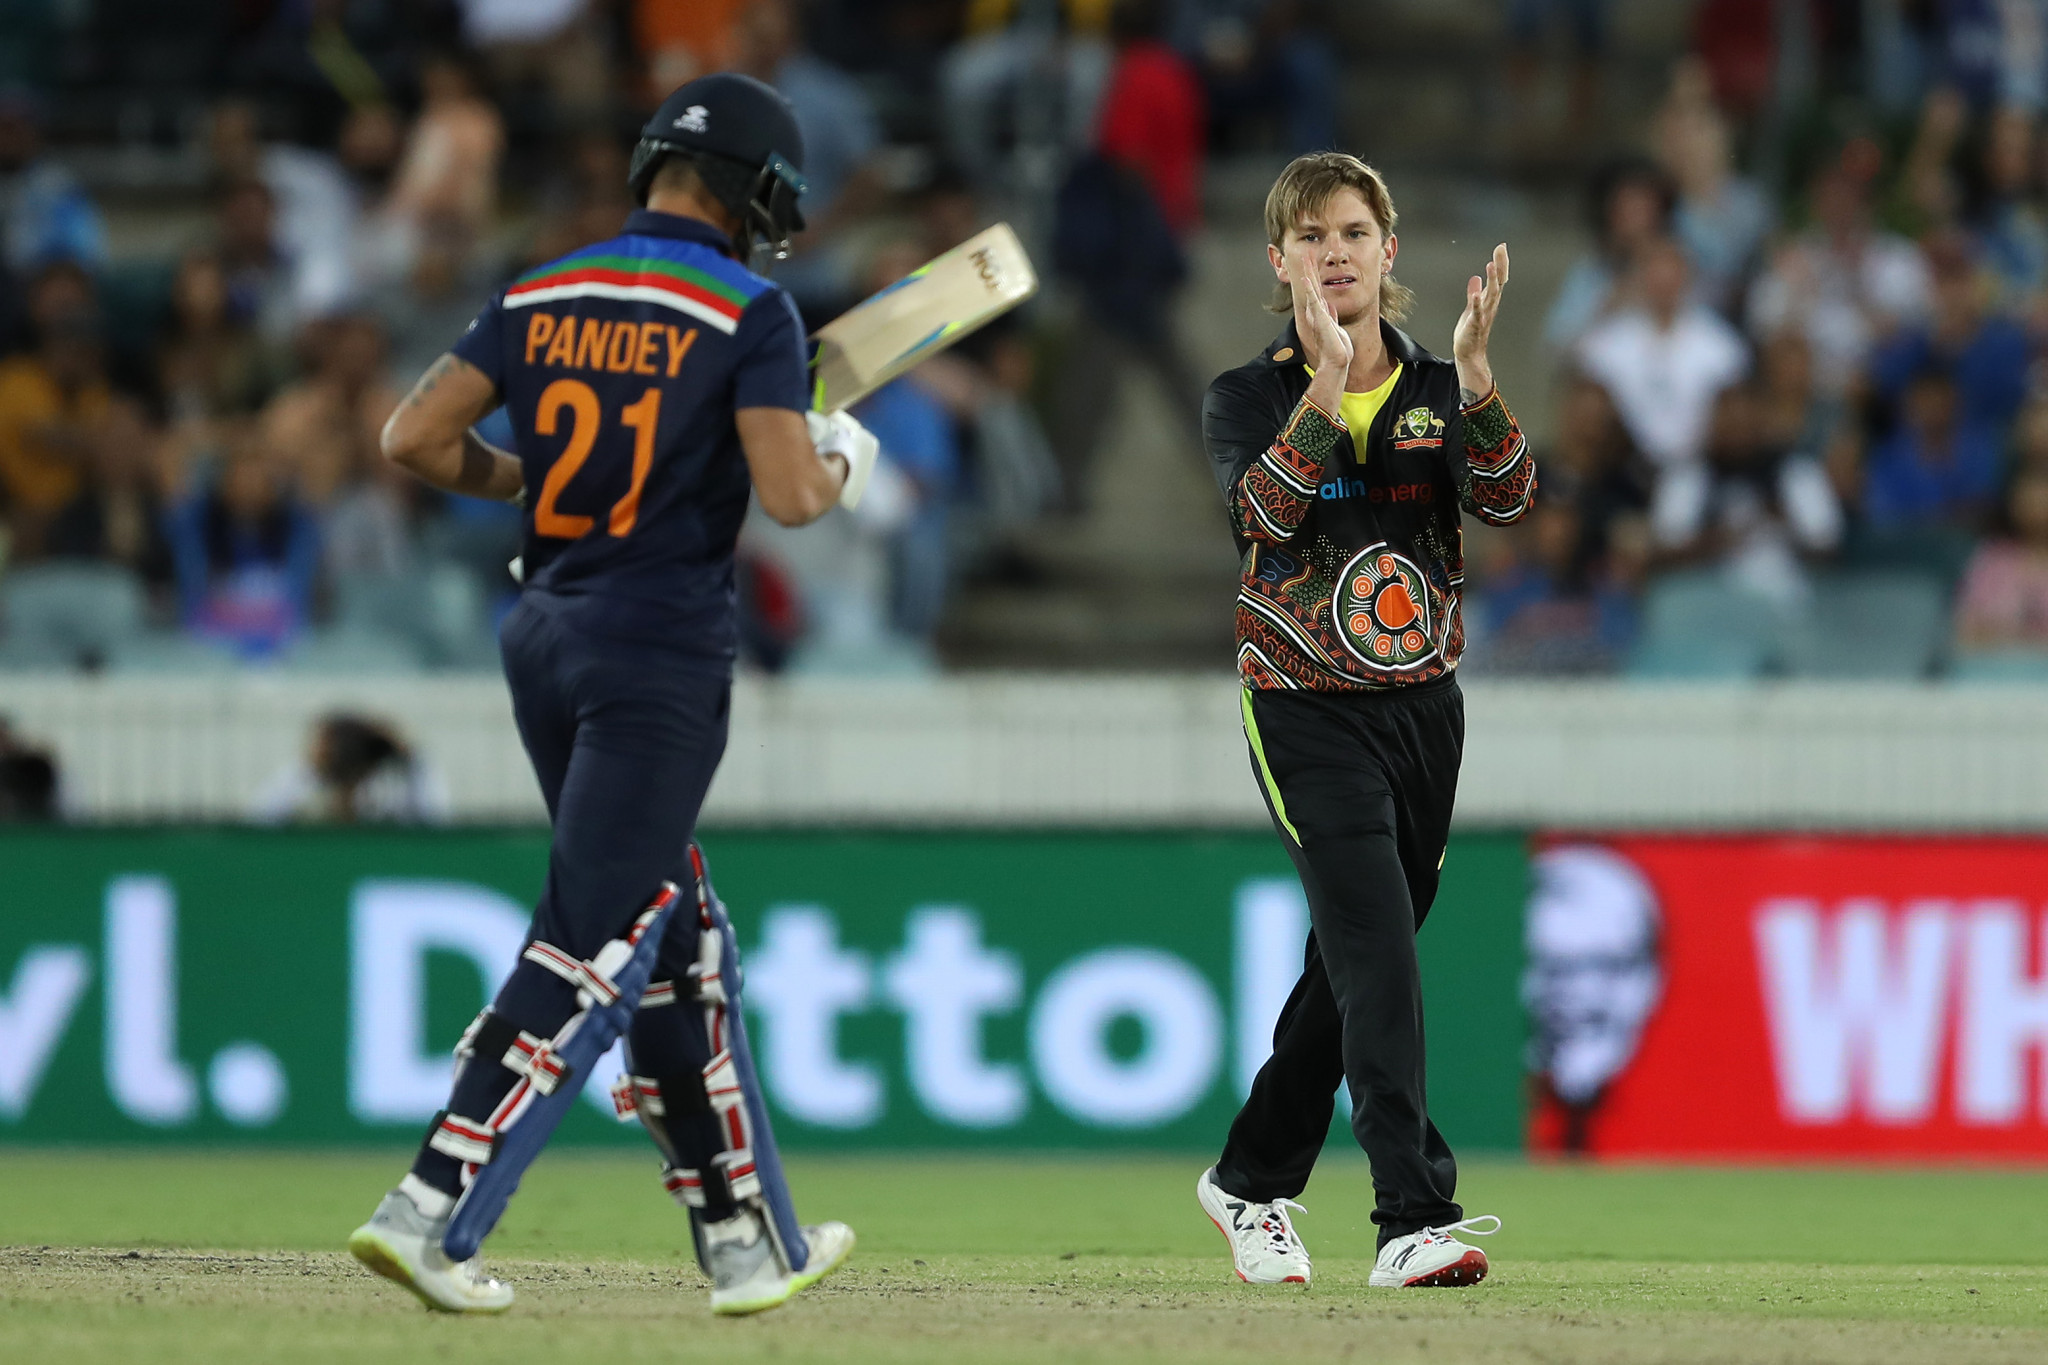 Australia's Adam Zampa has expressed concerns over the IPL being staged in India ©Getty Images